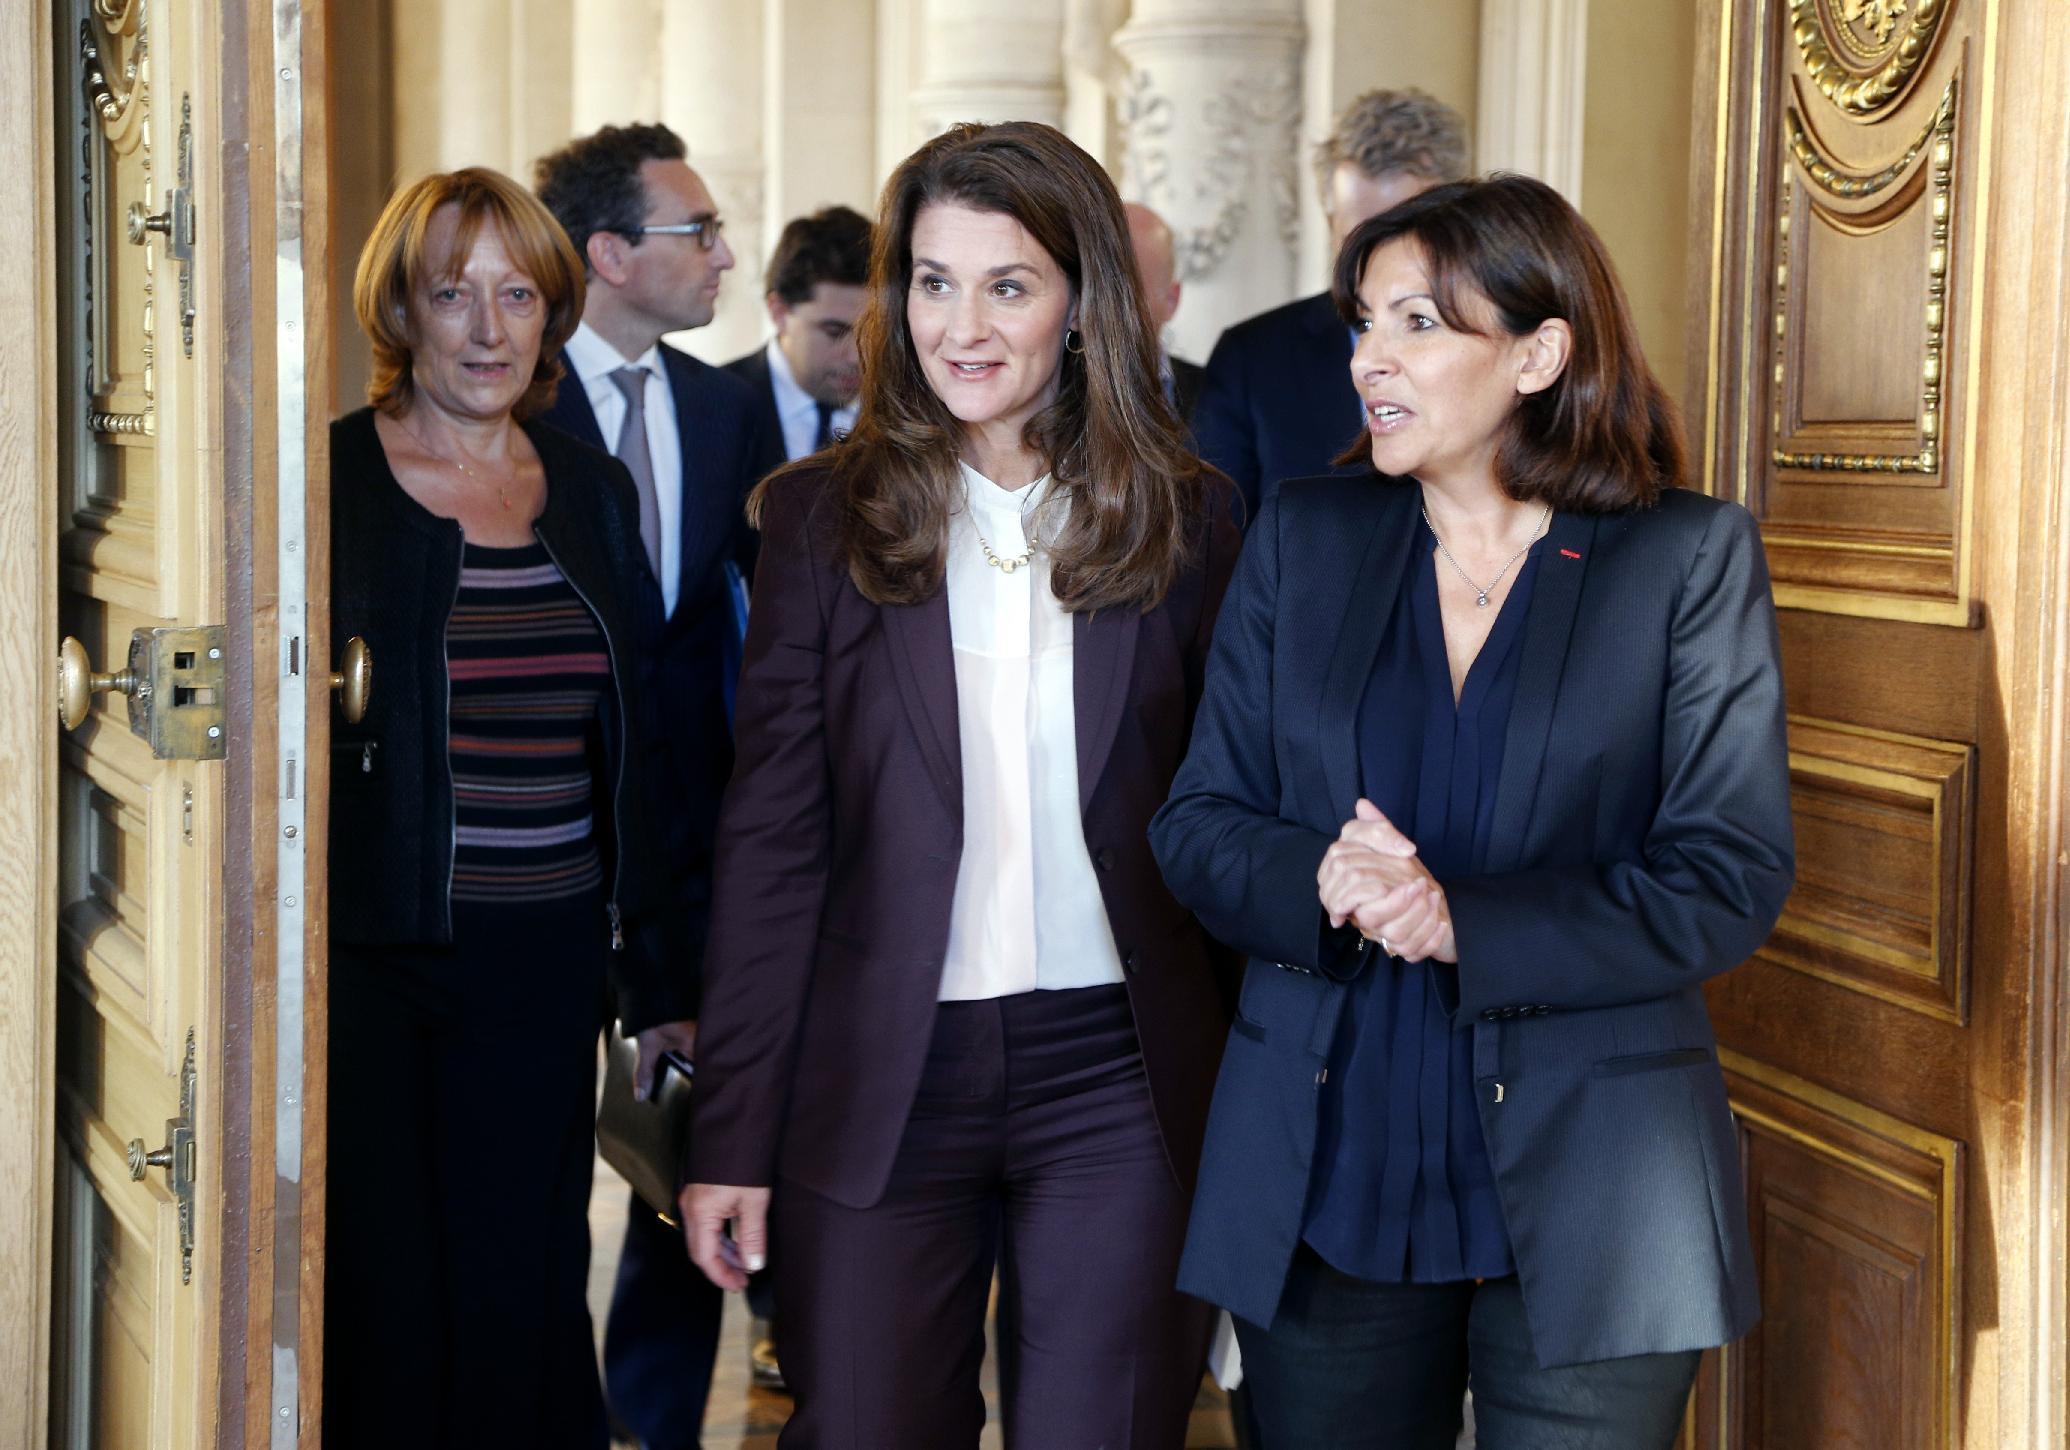 Paris Mayor Anne Hidalgo (R) speaks with Melinda Gates (C), co-chair of the Bill and Melinda Gates Foundation, during a meeting on October 14, 2014, in Paris about women and girls in developing countries (AFP Photo/Francois Guillot)